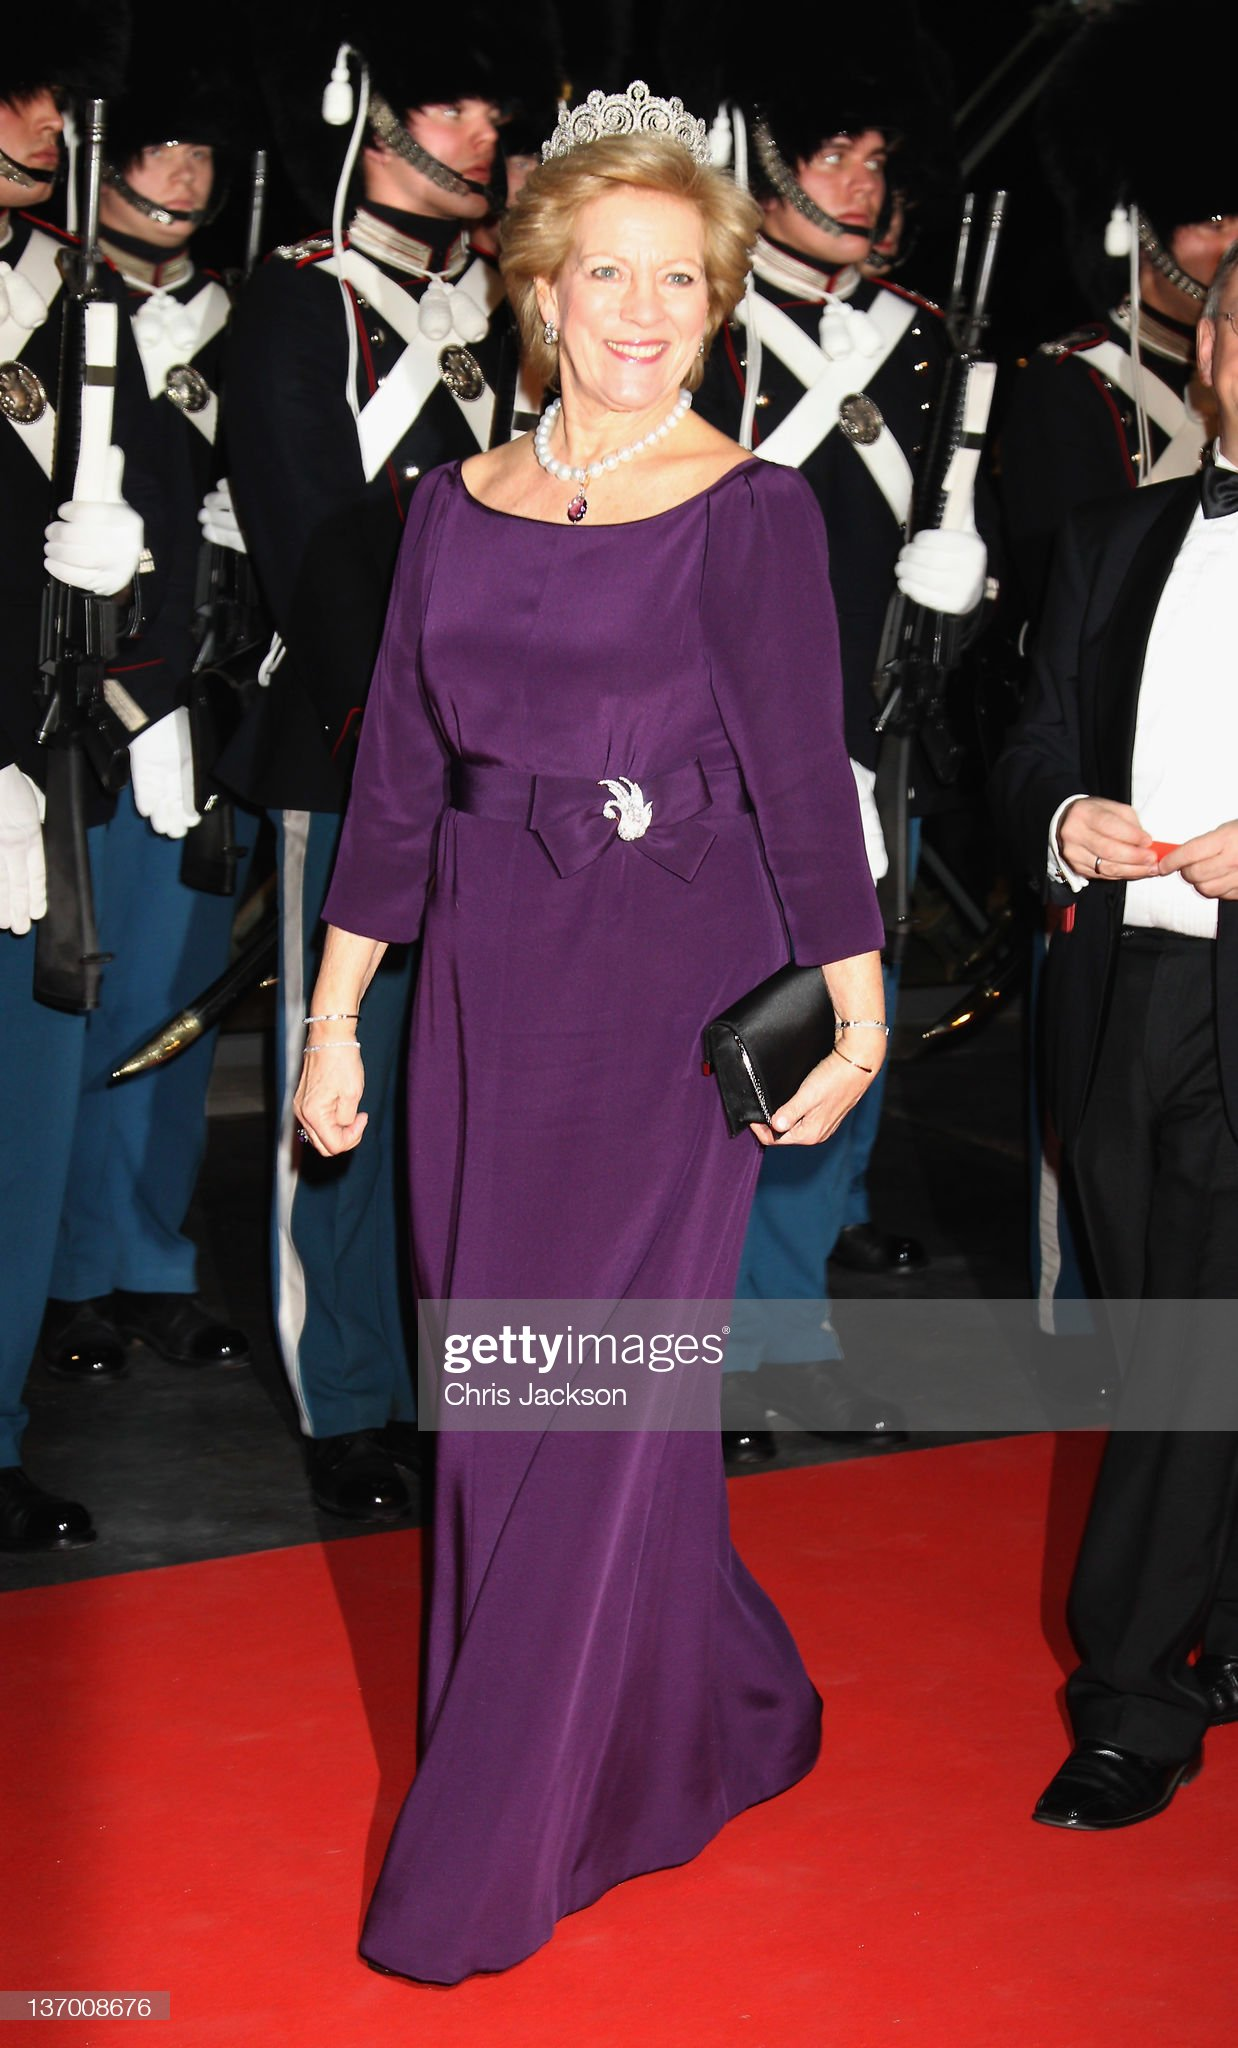 Queen Margrethe II of Denmark Celebrates 40 Years on The Throne - Gala Performance : News Photo